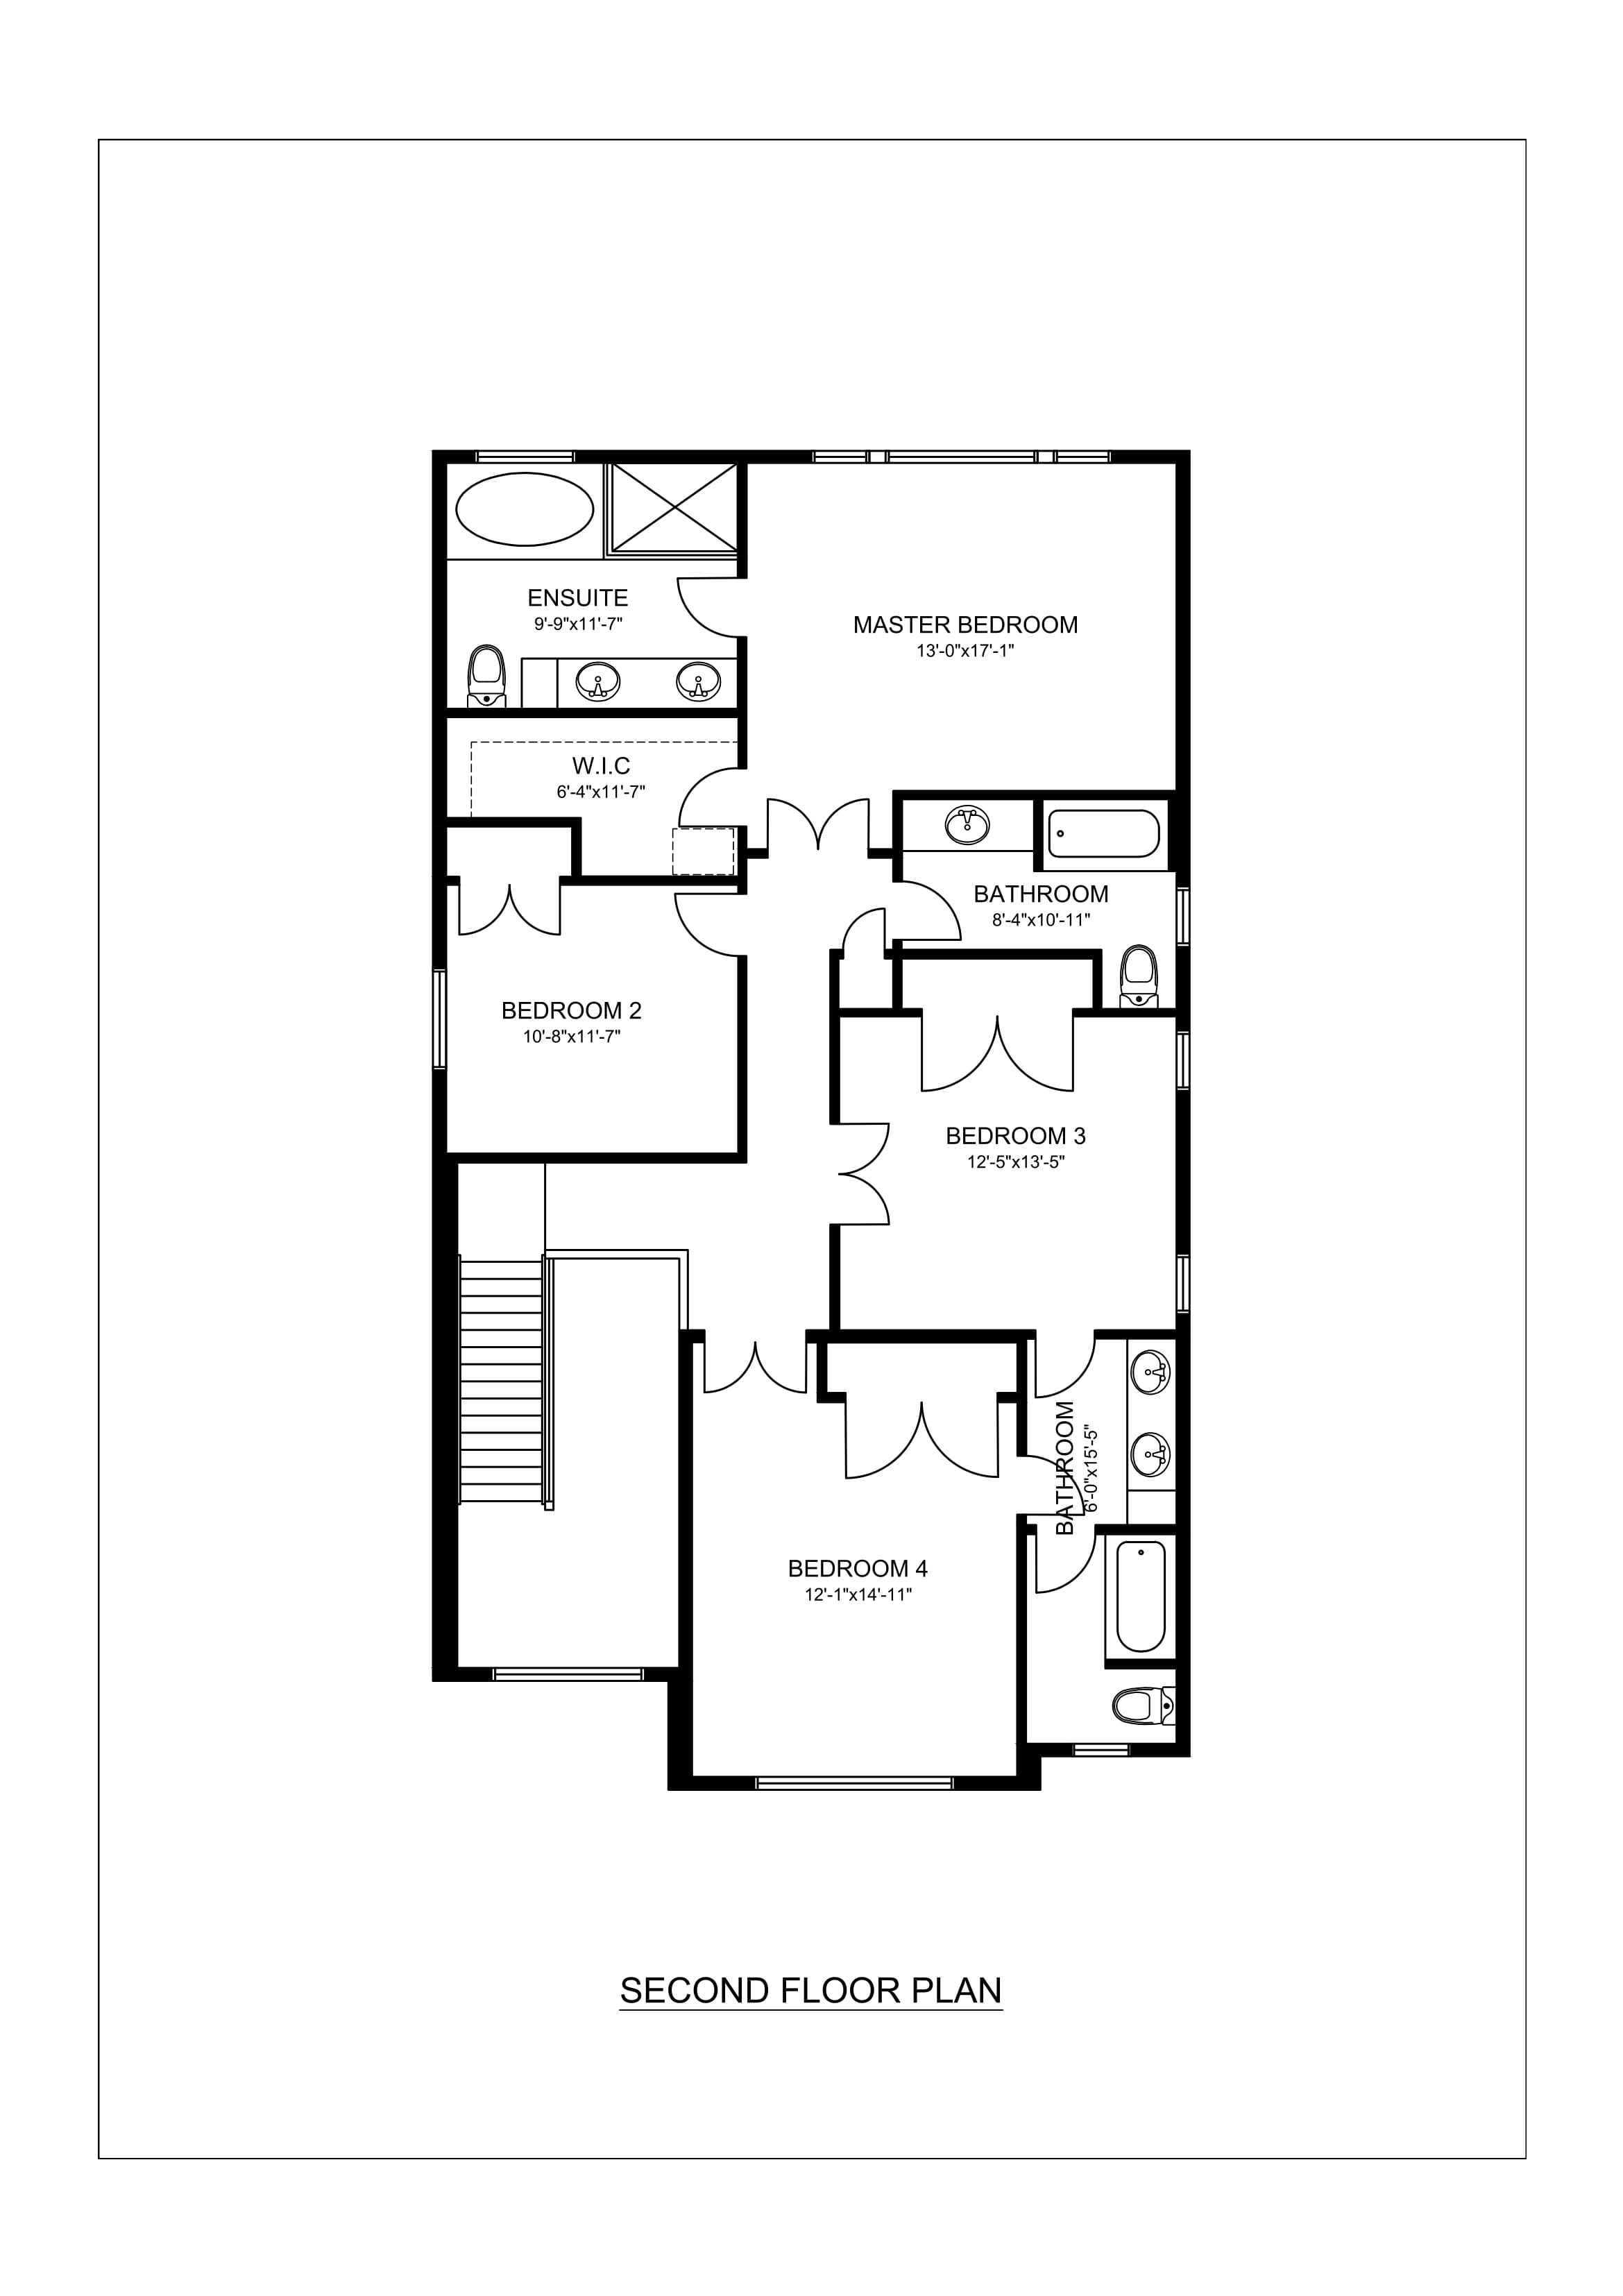 Awesome Sample Floor Plan Of A House Pictures